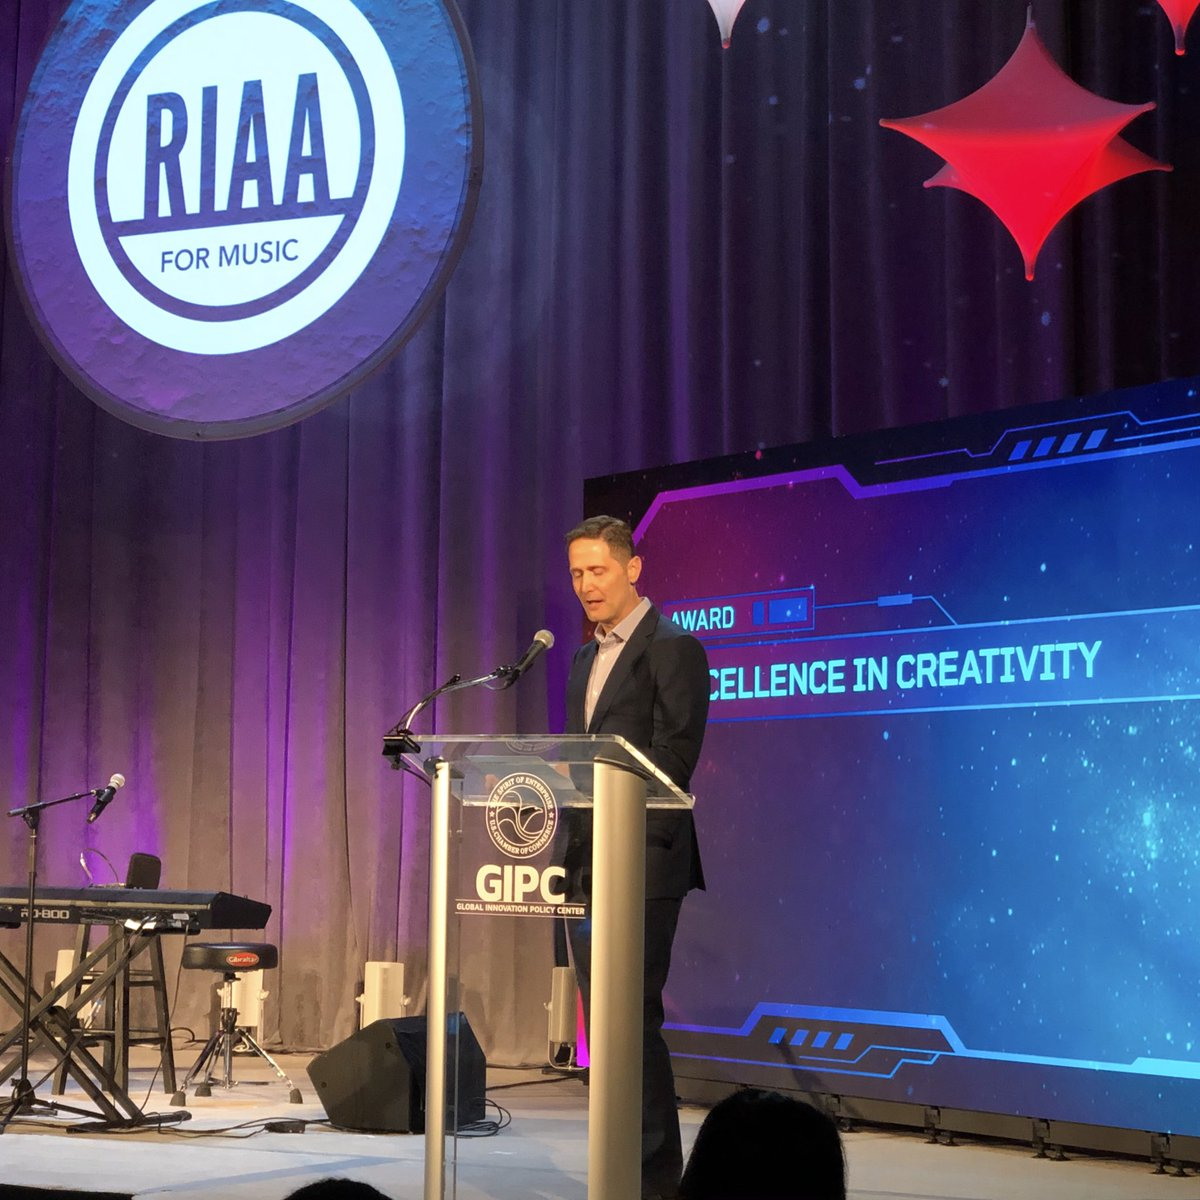 RIAA's Chairman and CEO @mitch_glazier was honored to present the Excellence in Creativity Award to @WMNashville's @janson_chris at the 2019 IP Champions Gala✨ #IPChamps2019